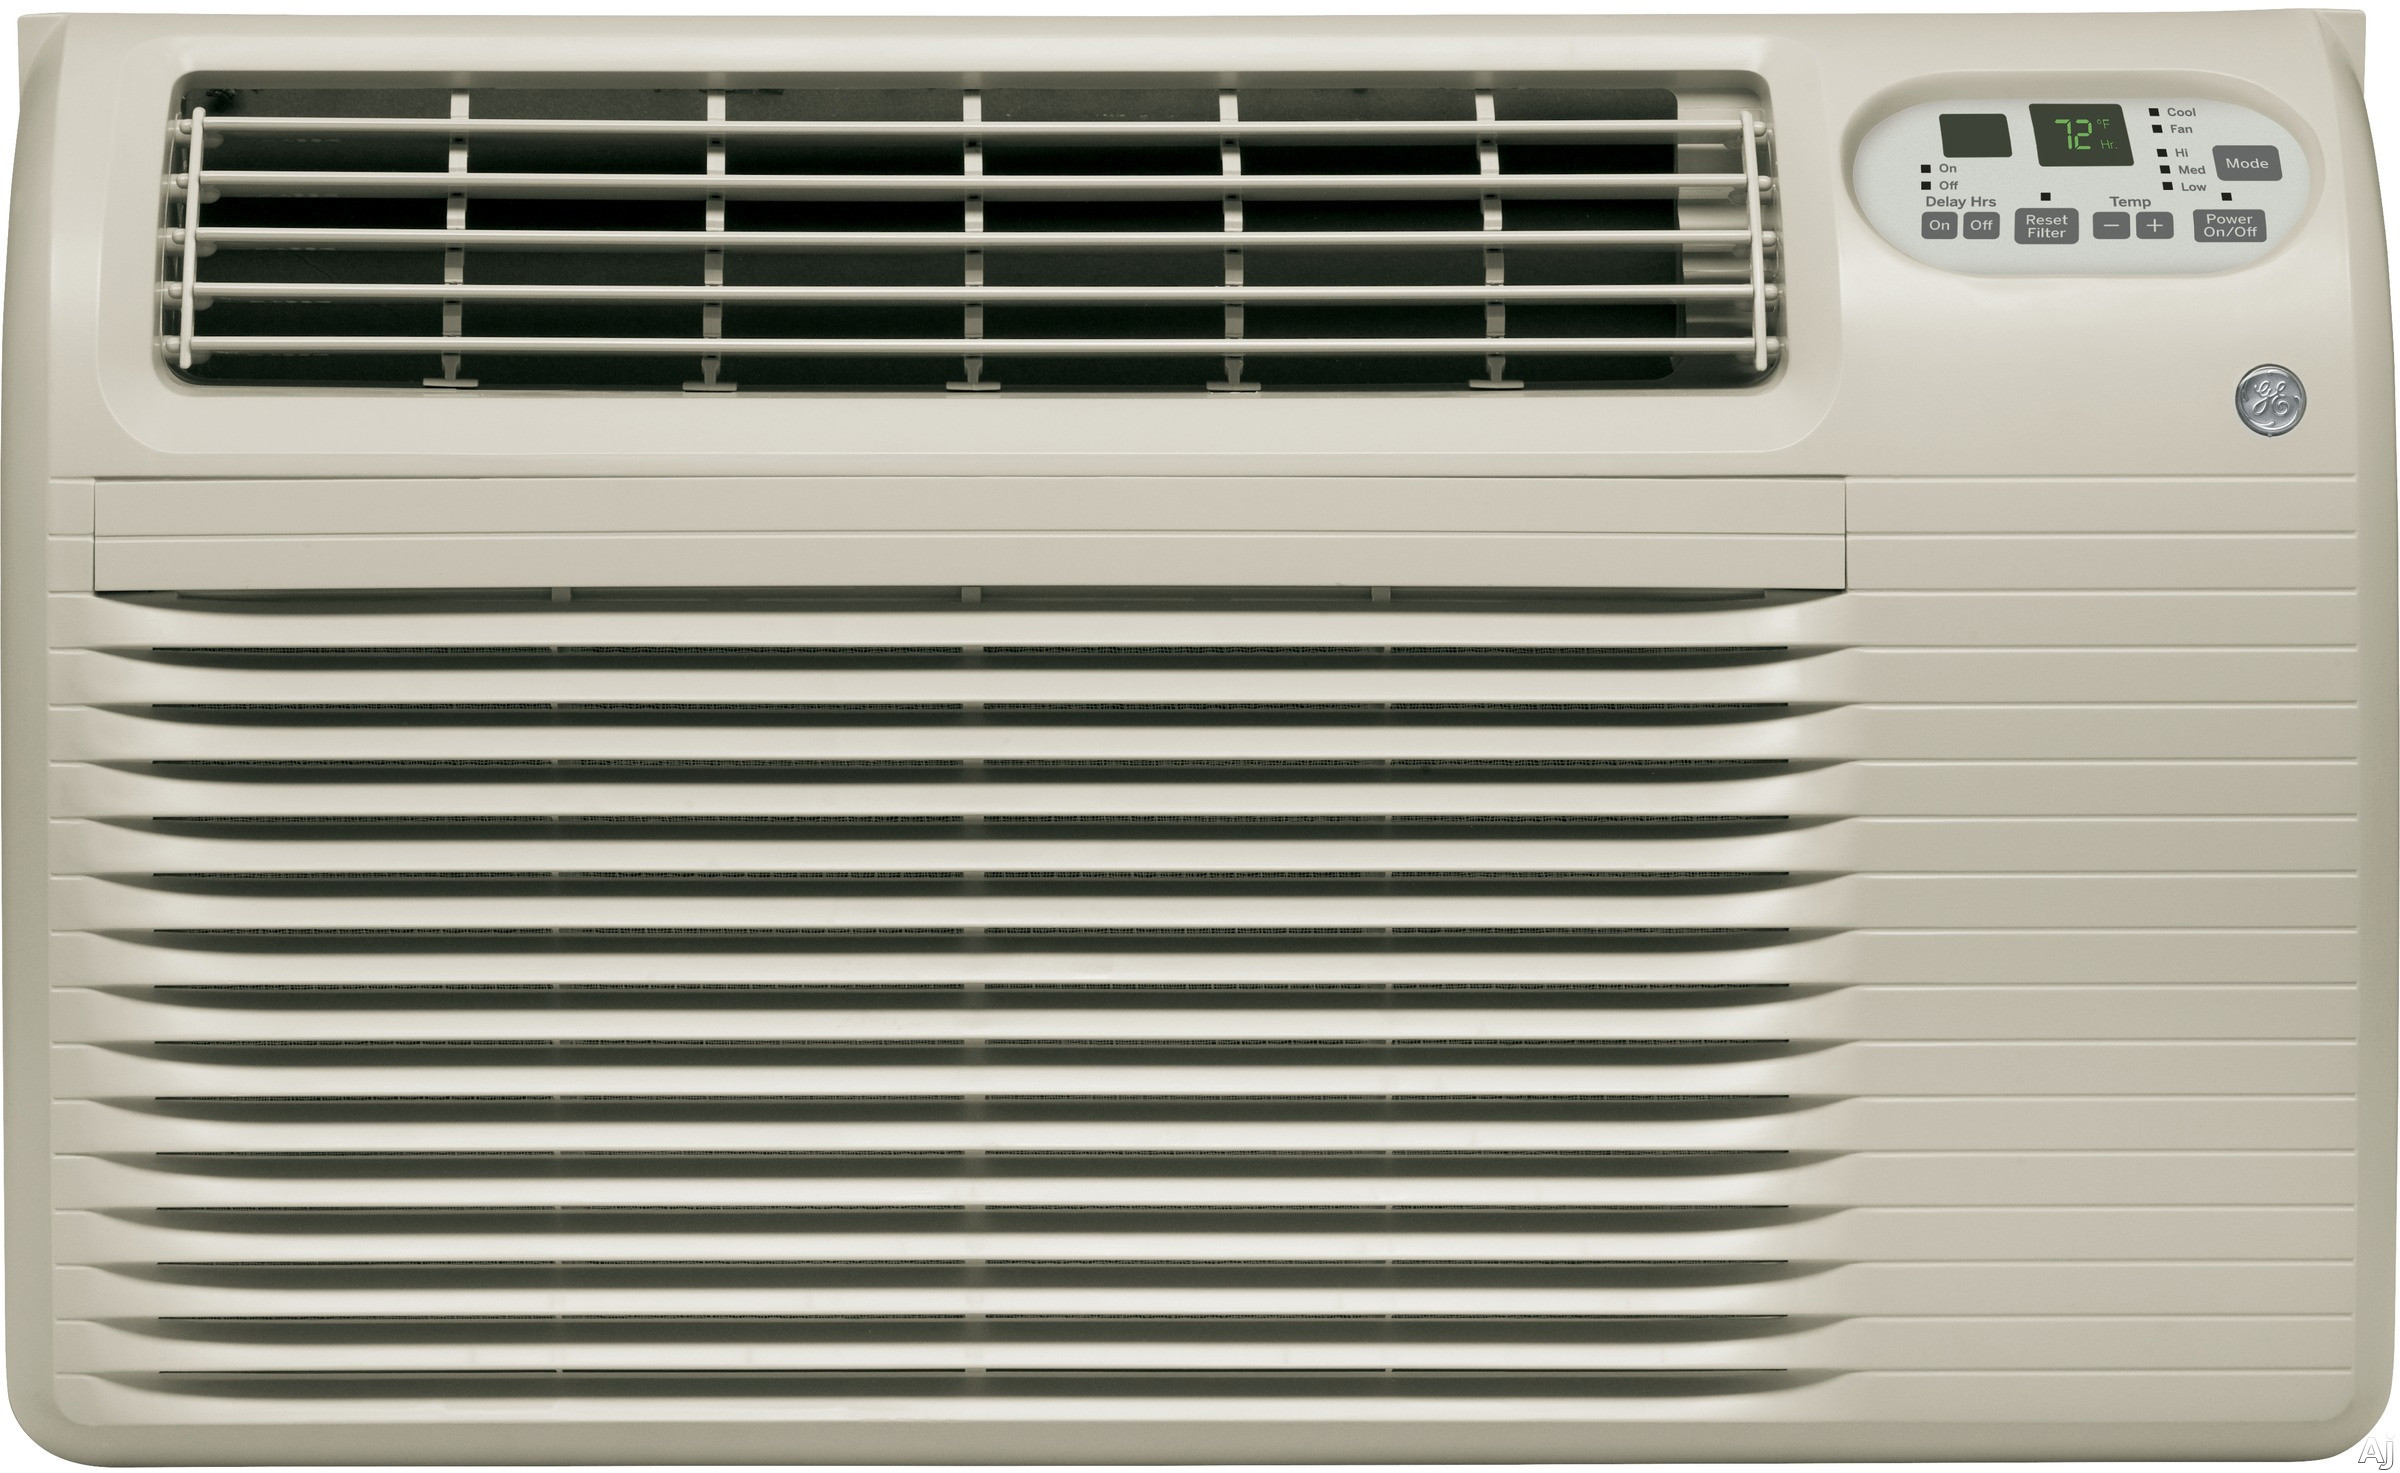 GE AJCQ09DCF 9,600 BTU Thru-the-Wall Air Conditioner with 9.8 EER, R-410A Refrigerant, 2.2 Pts/Hr Dehumidification, Energy Saver, Remote Control, ADA Compliant, ENERGY STAR and 230/208 Volts AJCQ09DCF